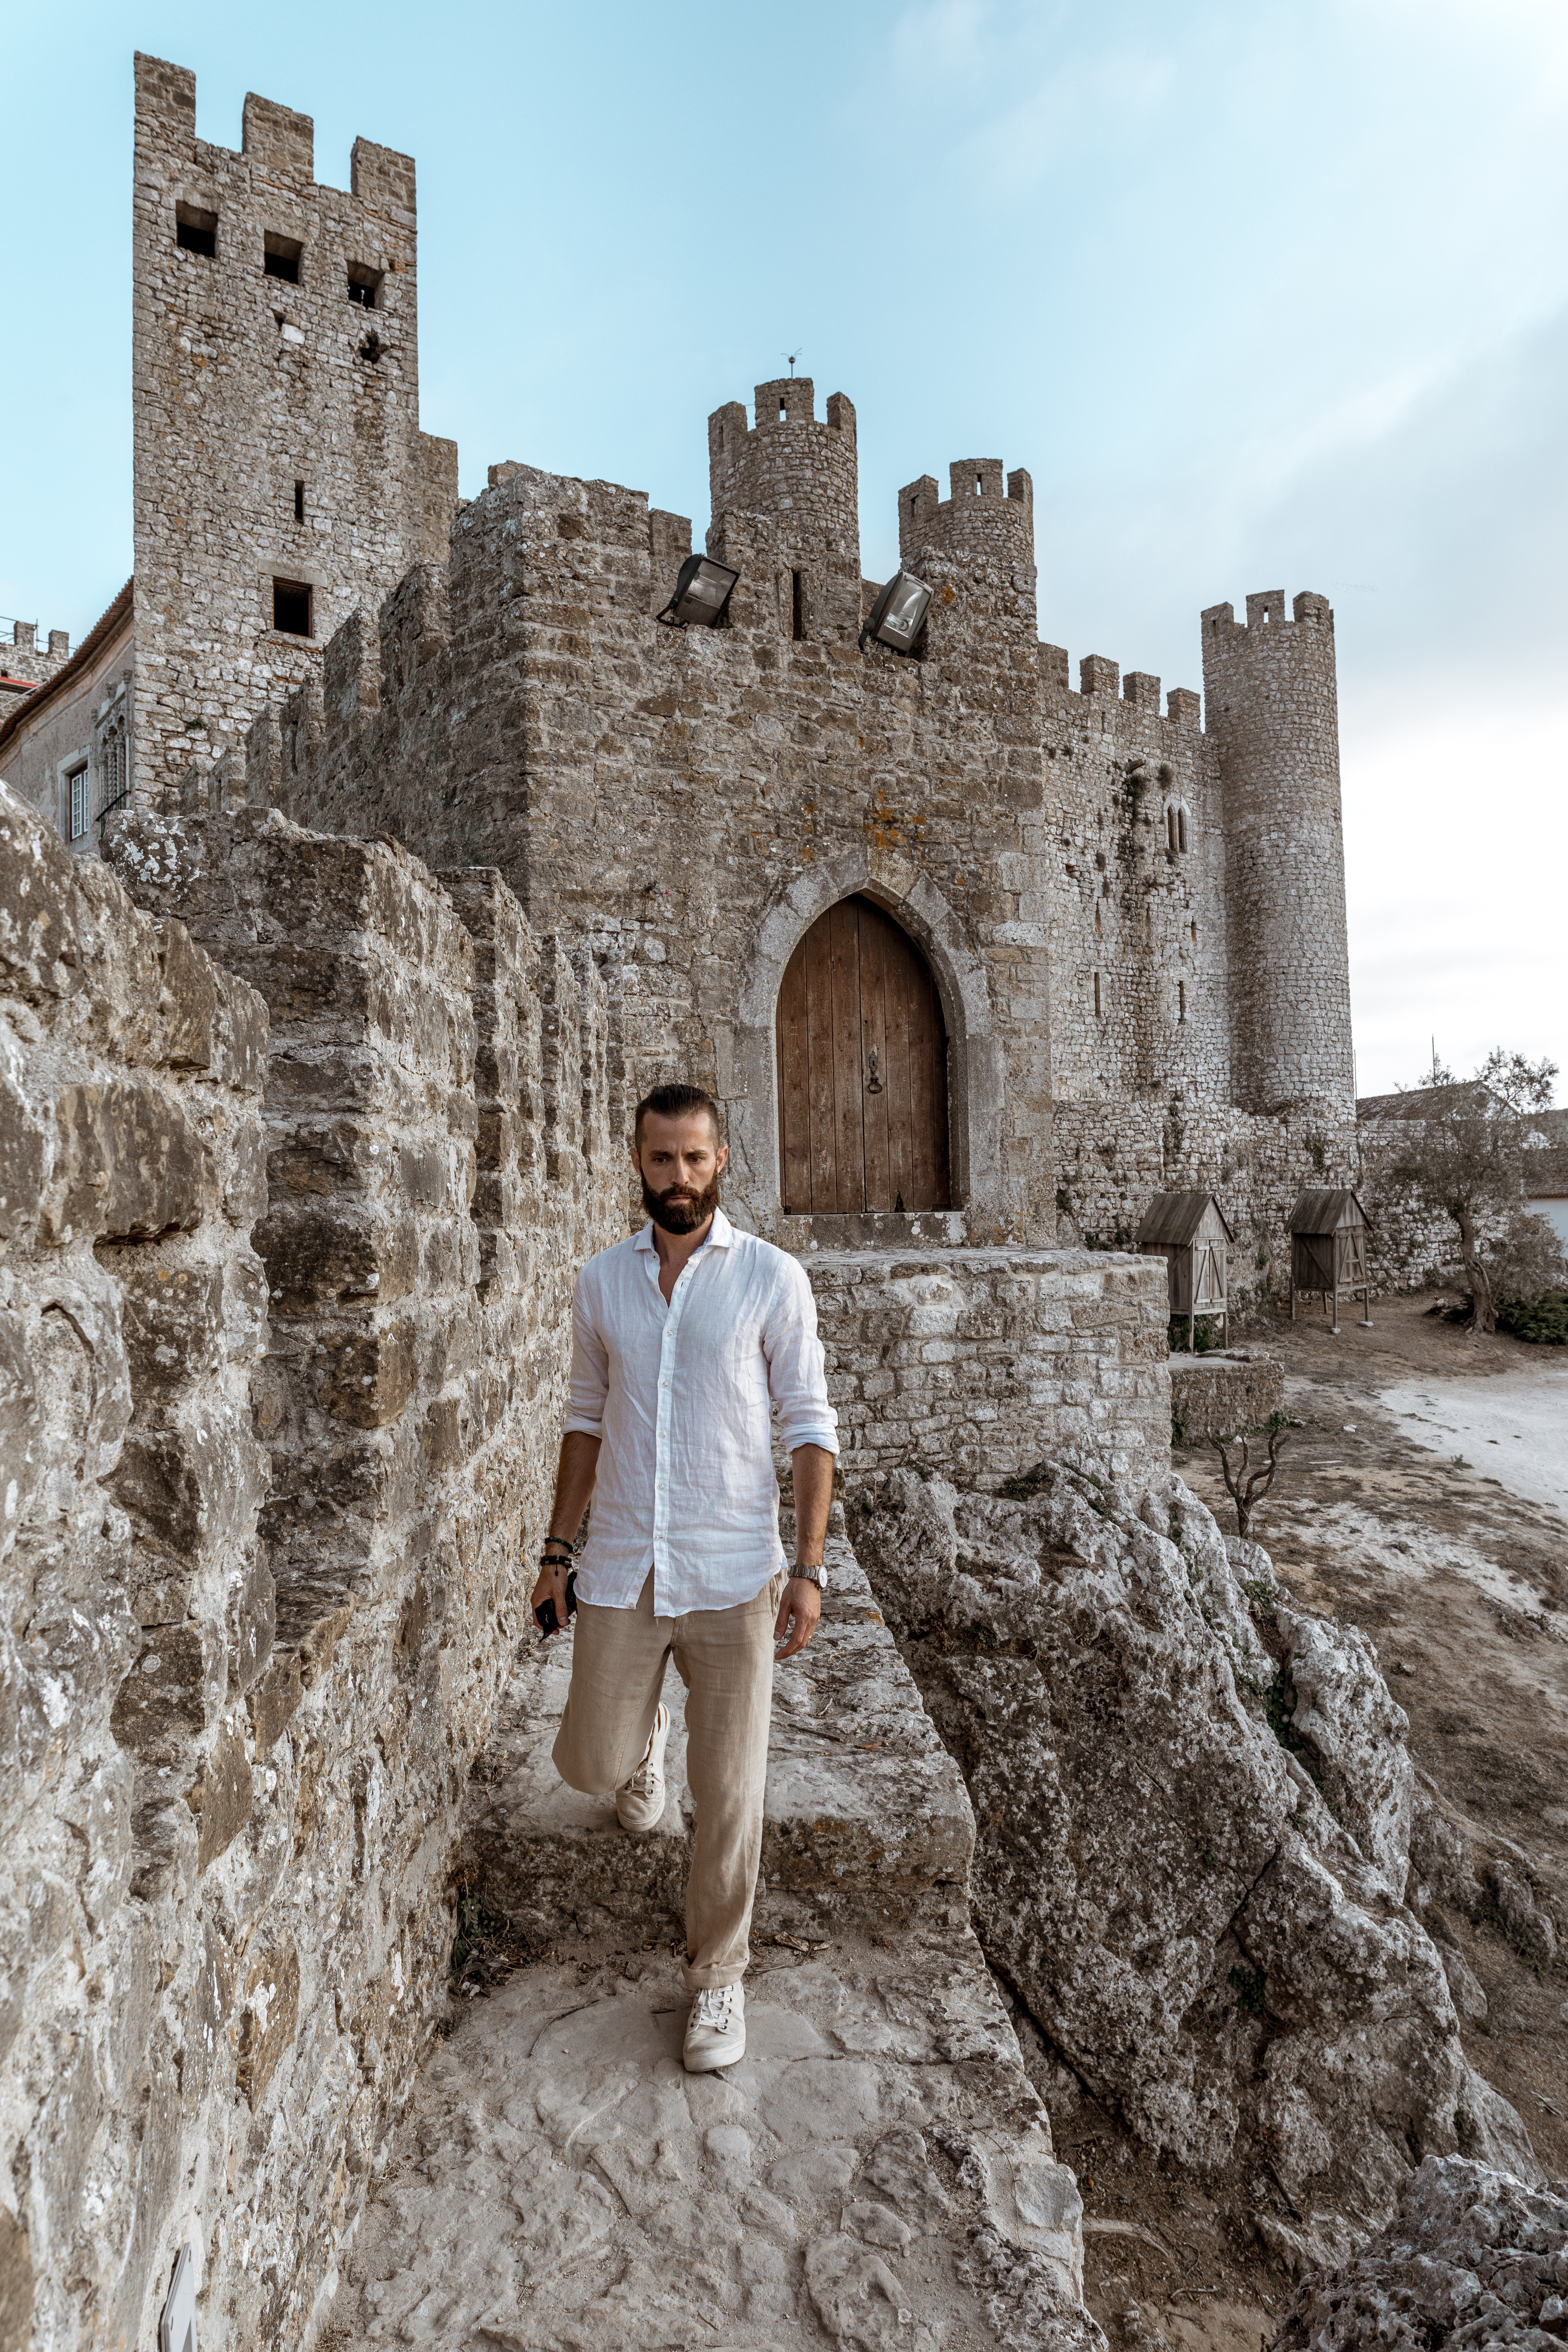 Michael Checkers men's street style blogger walking in a castle in Portugal